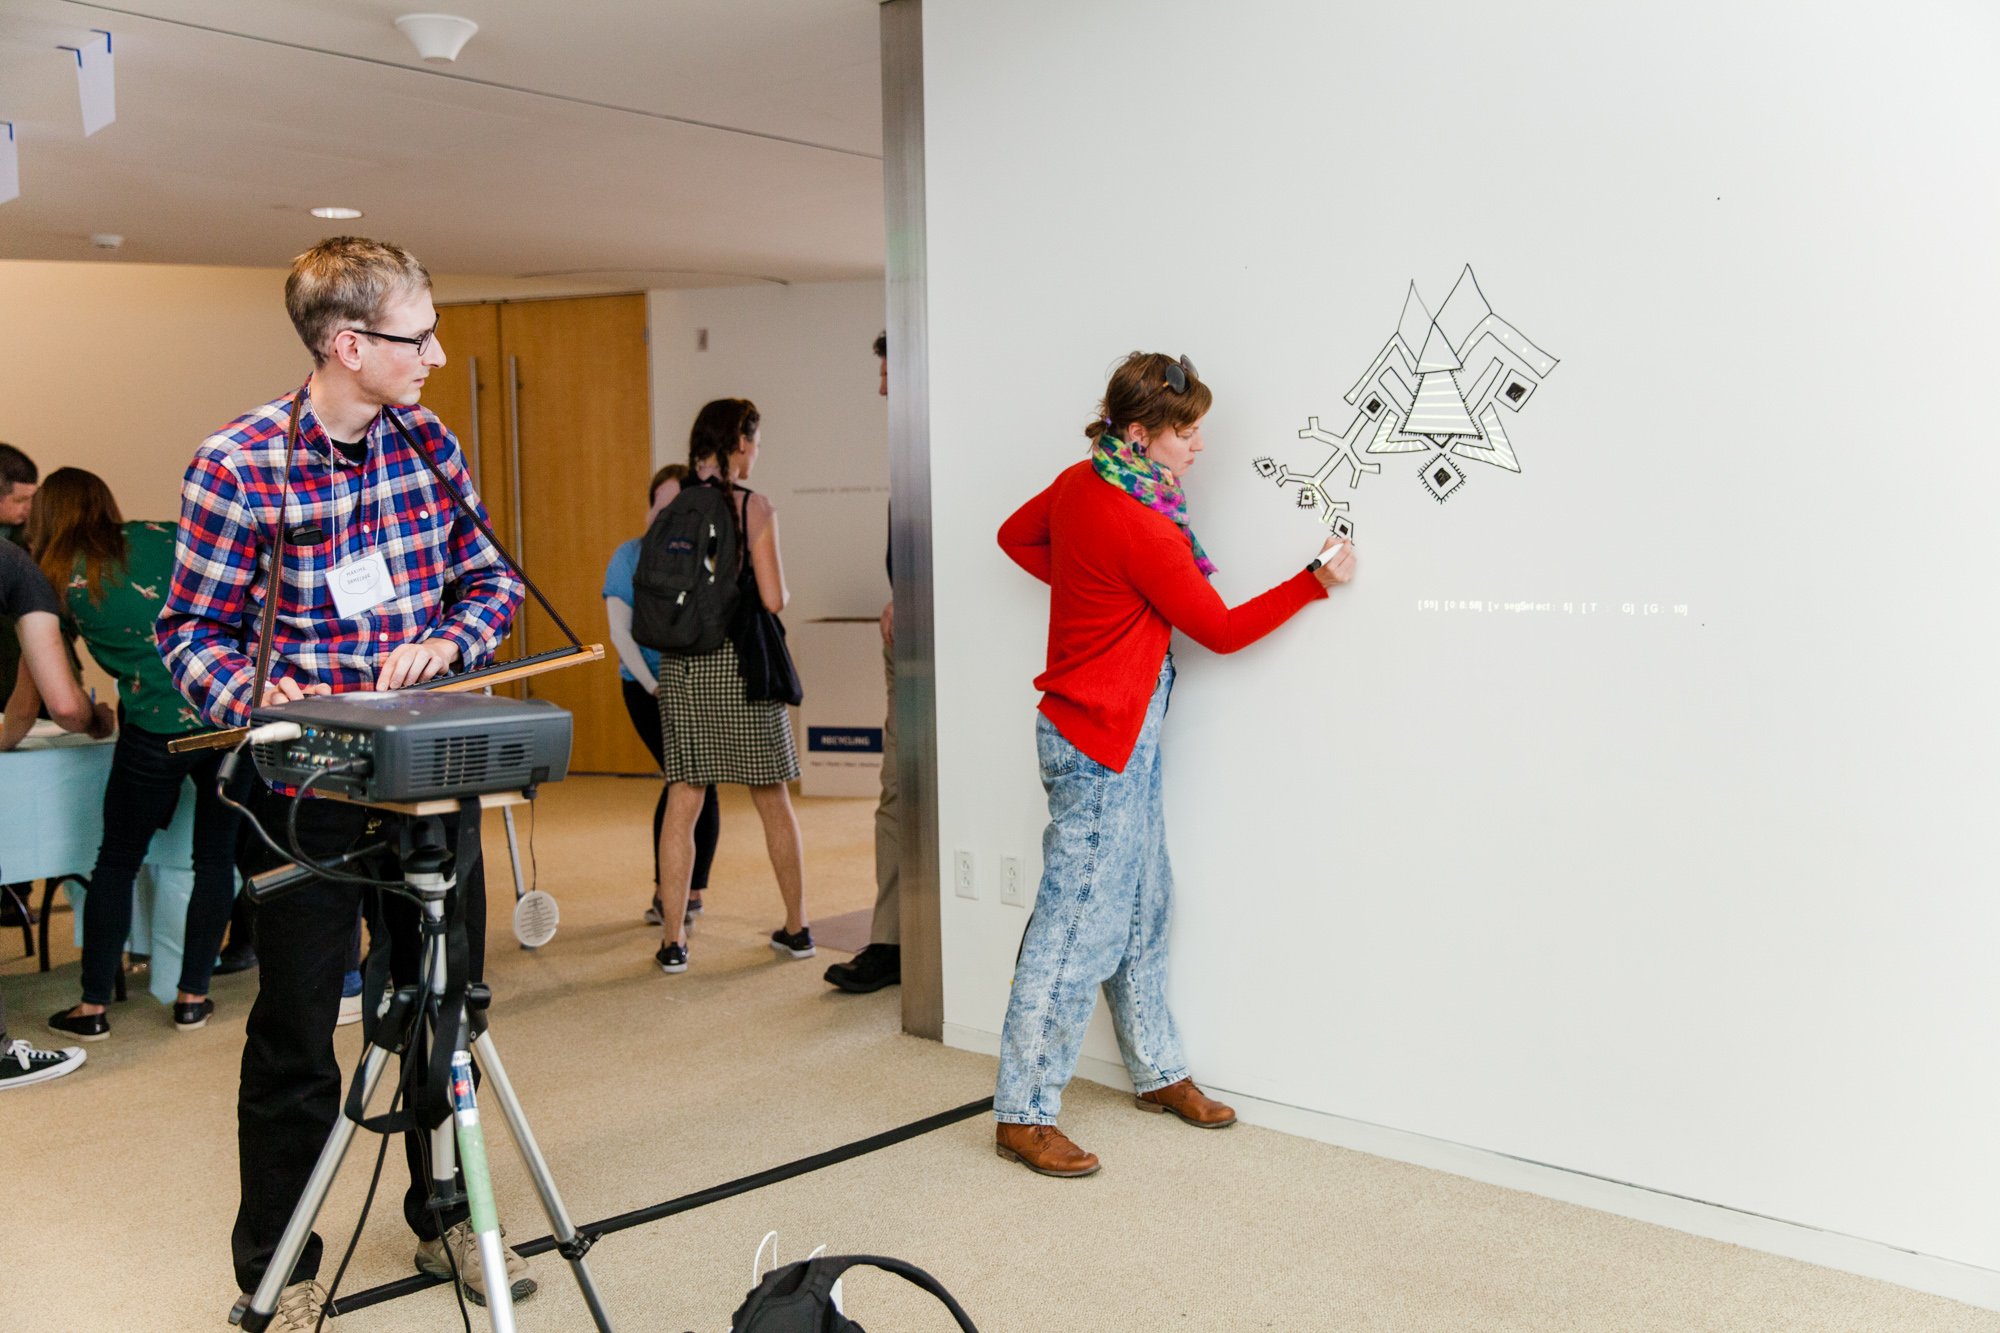 woman drawing art on the wall with man controlling projection with keyboard